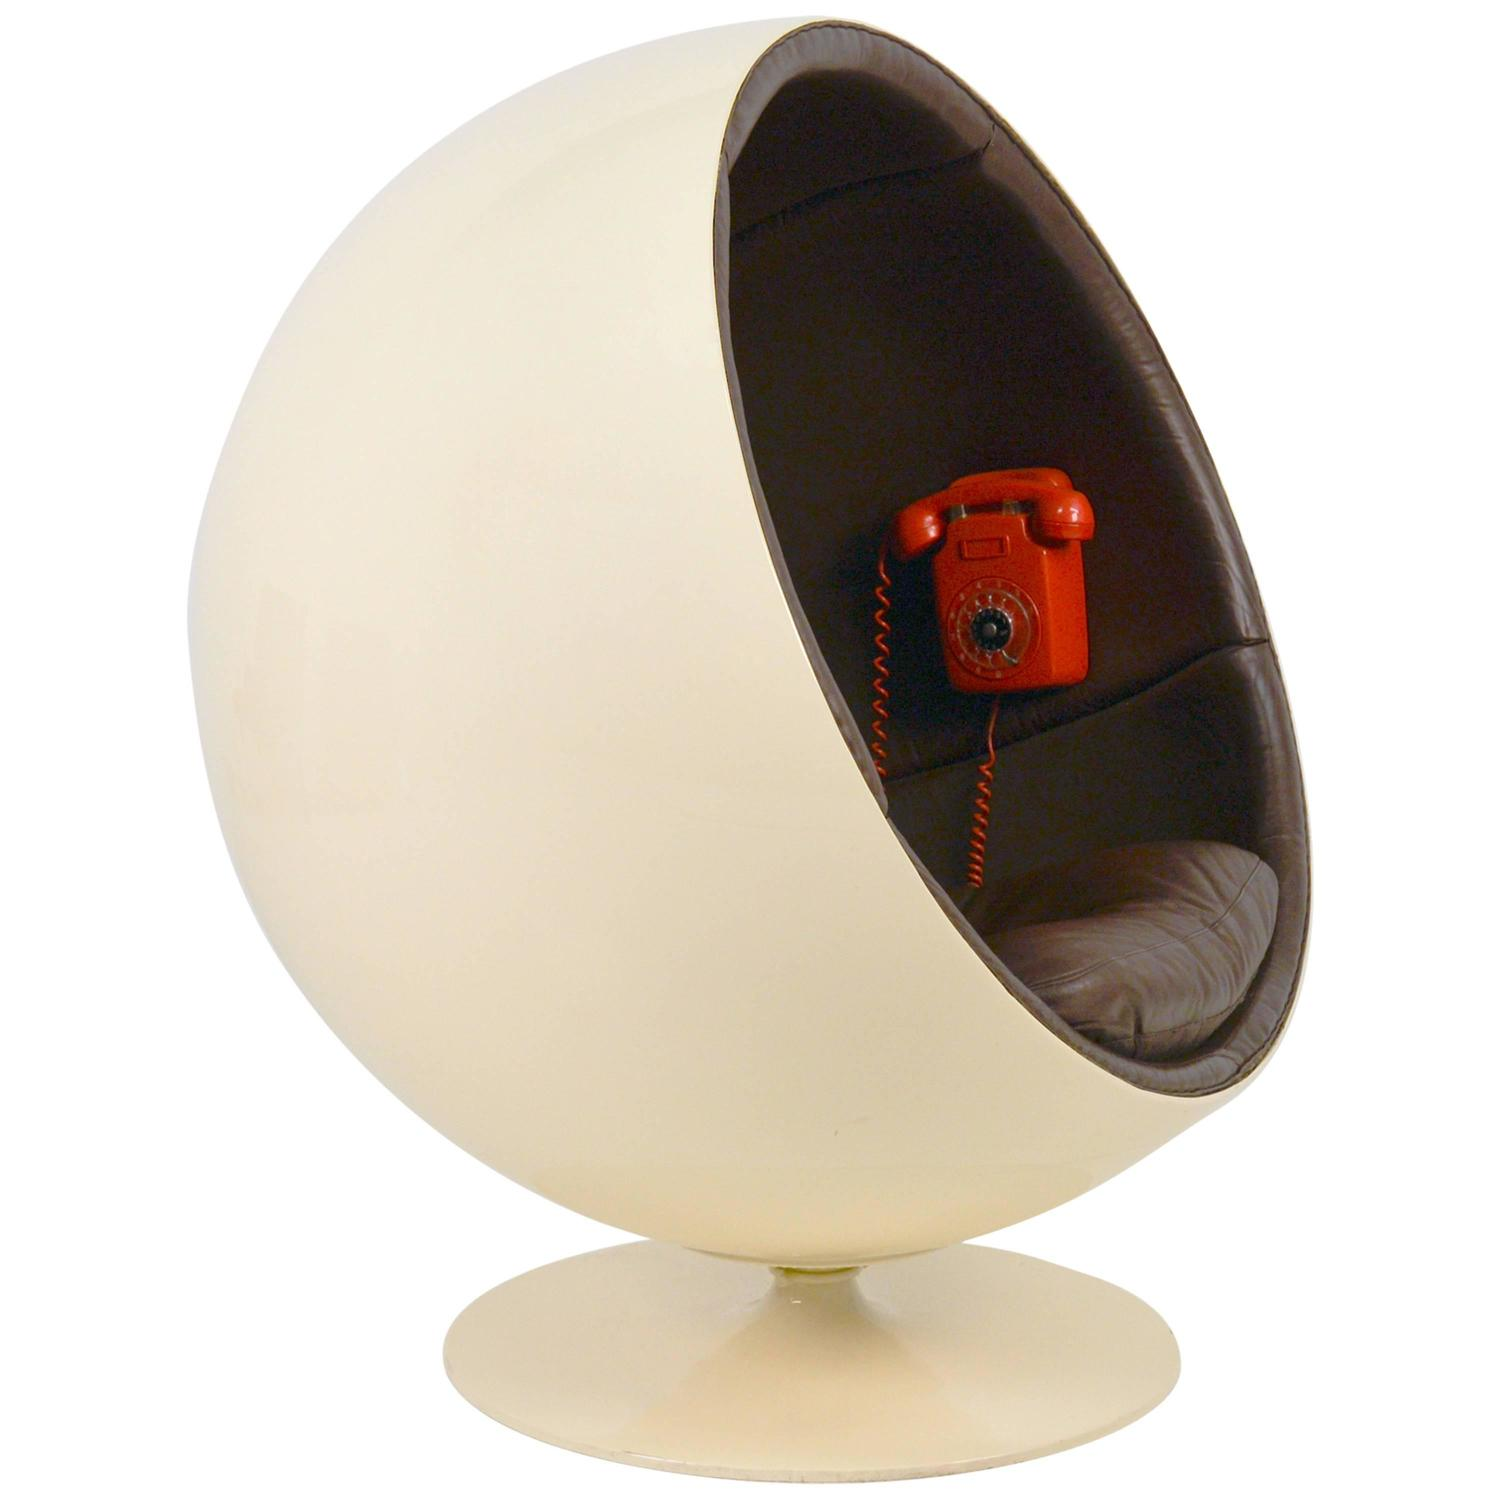 extremely rare ball chair by eero aarnio made by asko with phone for sale at 1stdibs. Black Bedroom Furniture Sets. Home Design Ideas